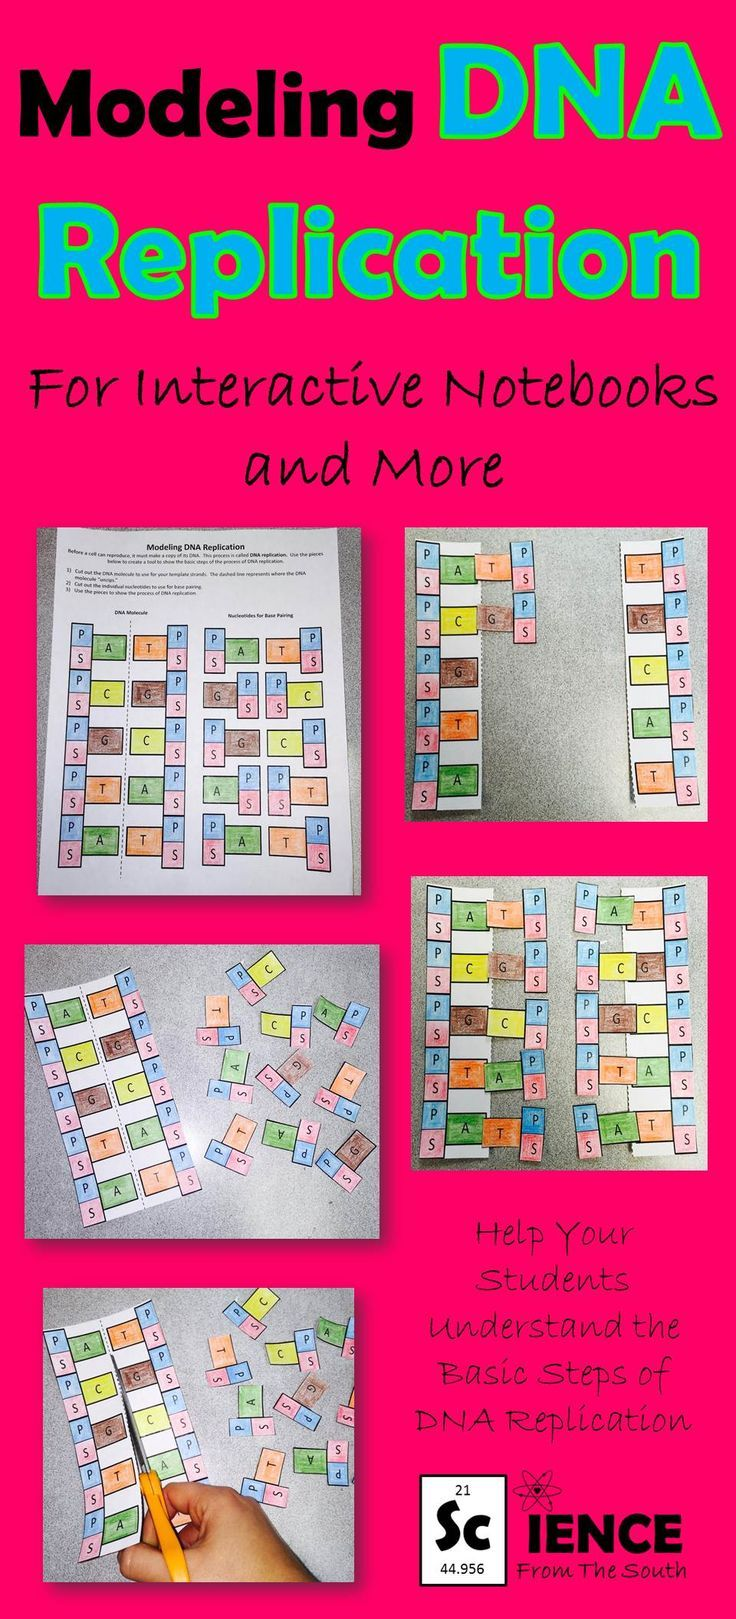 Modeling DNA Replication for Interactive Notebooks and